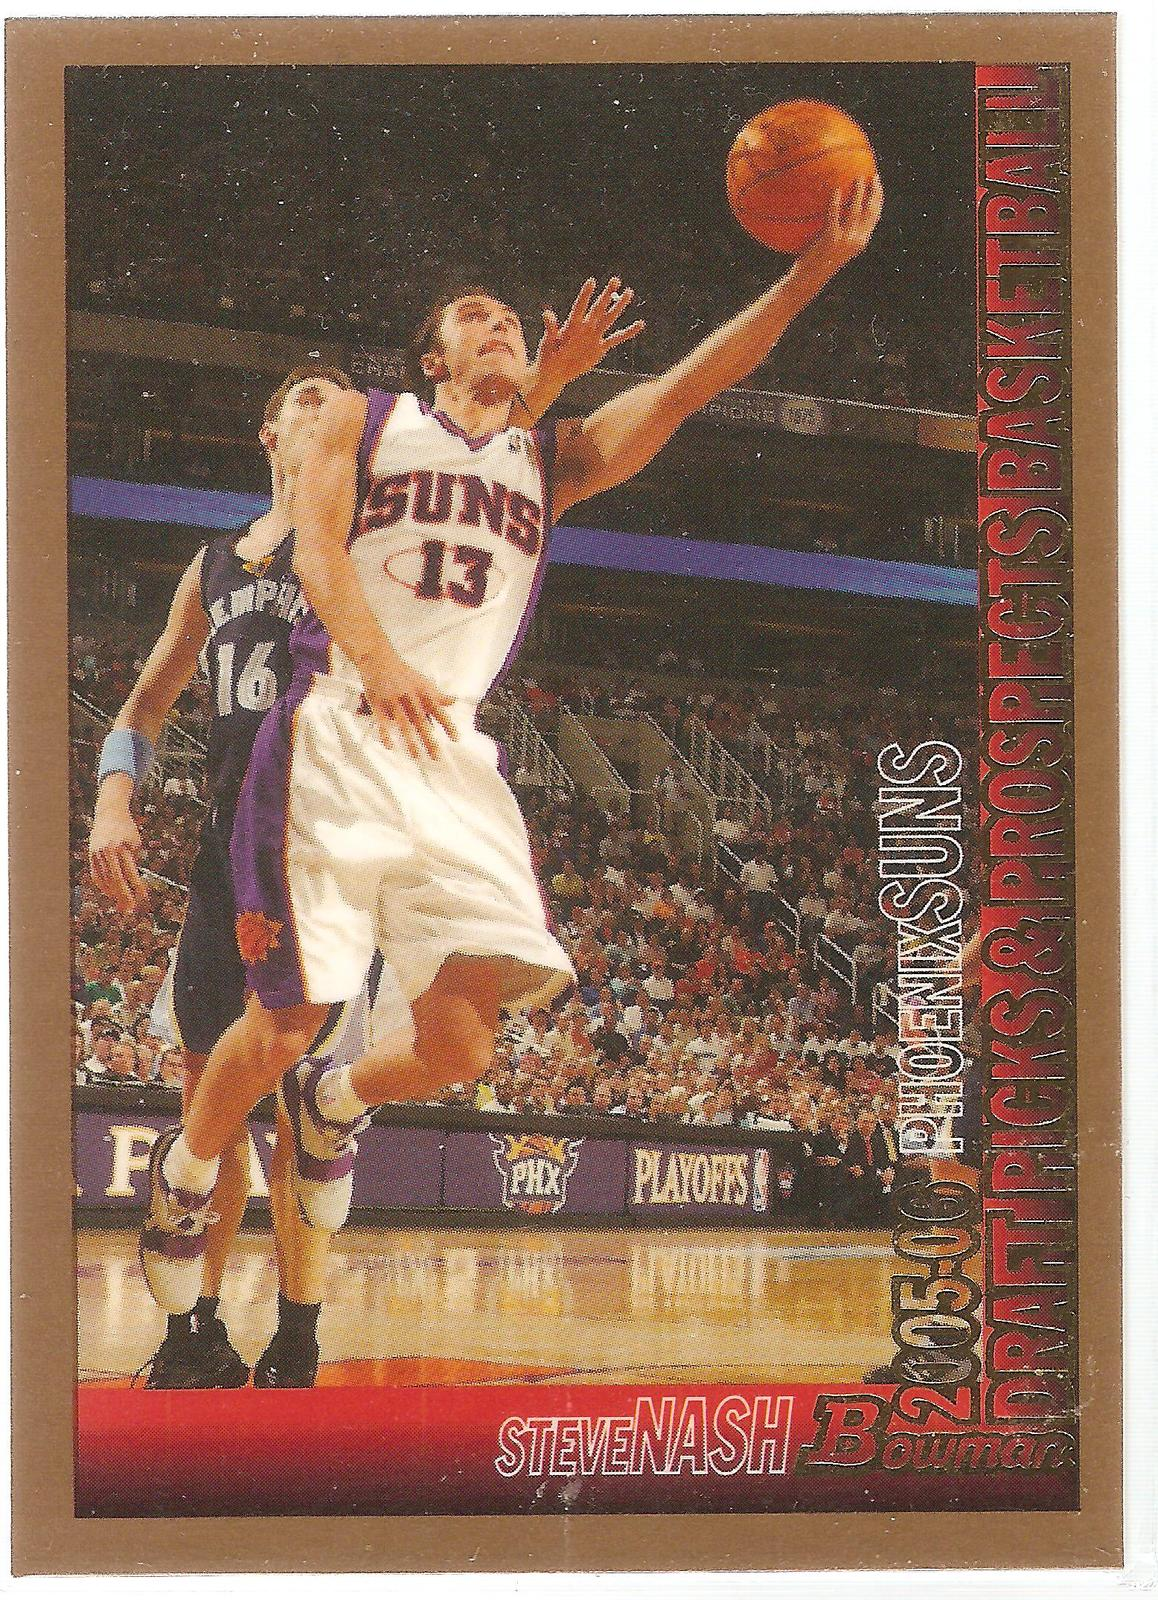 Primary image for Steve Nash Bowman 05-06 #1 Gold Parallel Phoenix Suns Los Angeles Lakers Dallas